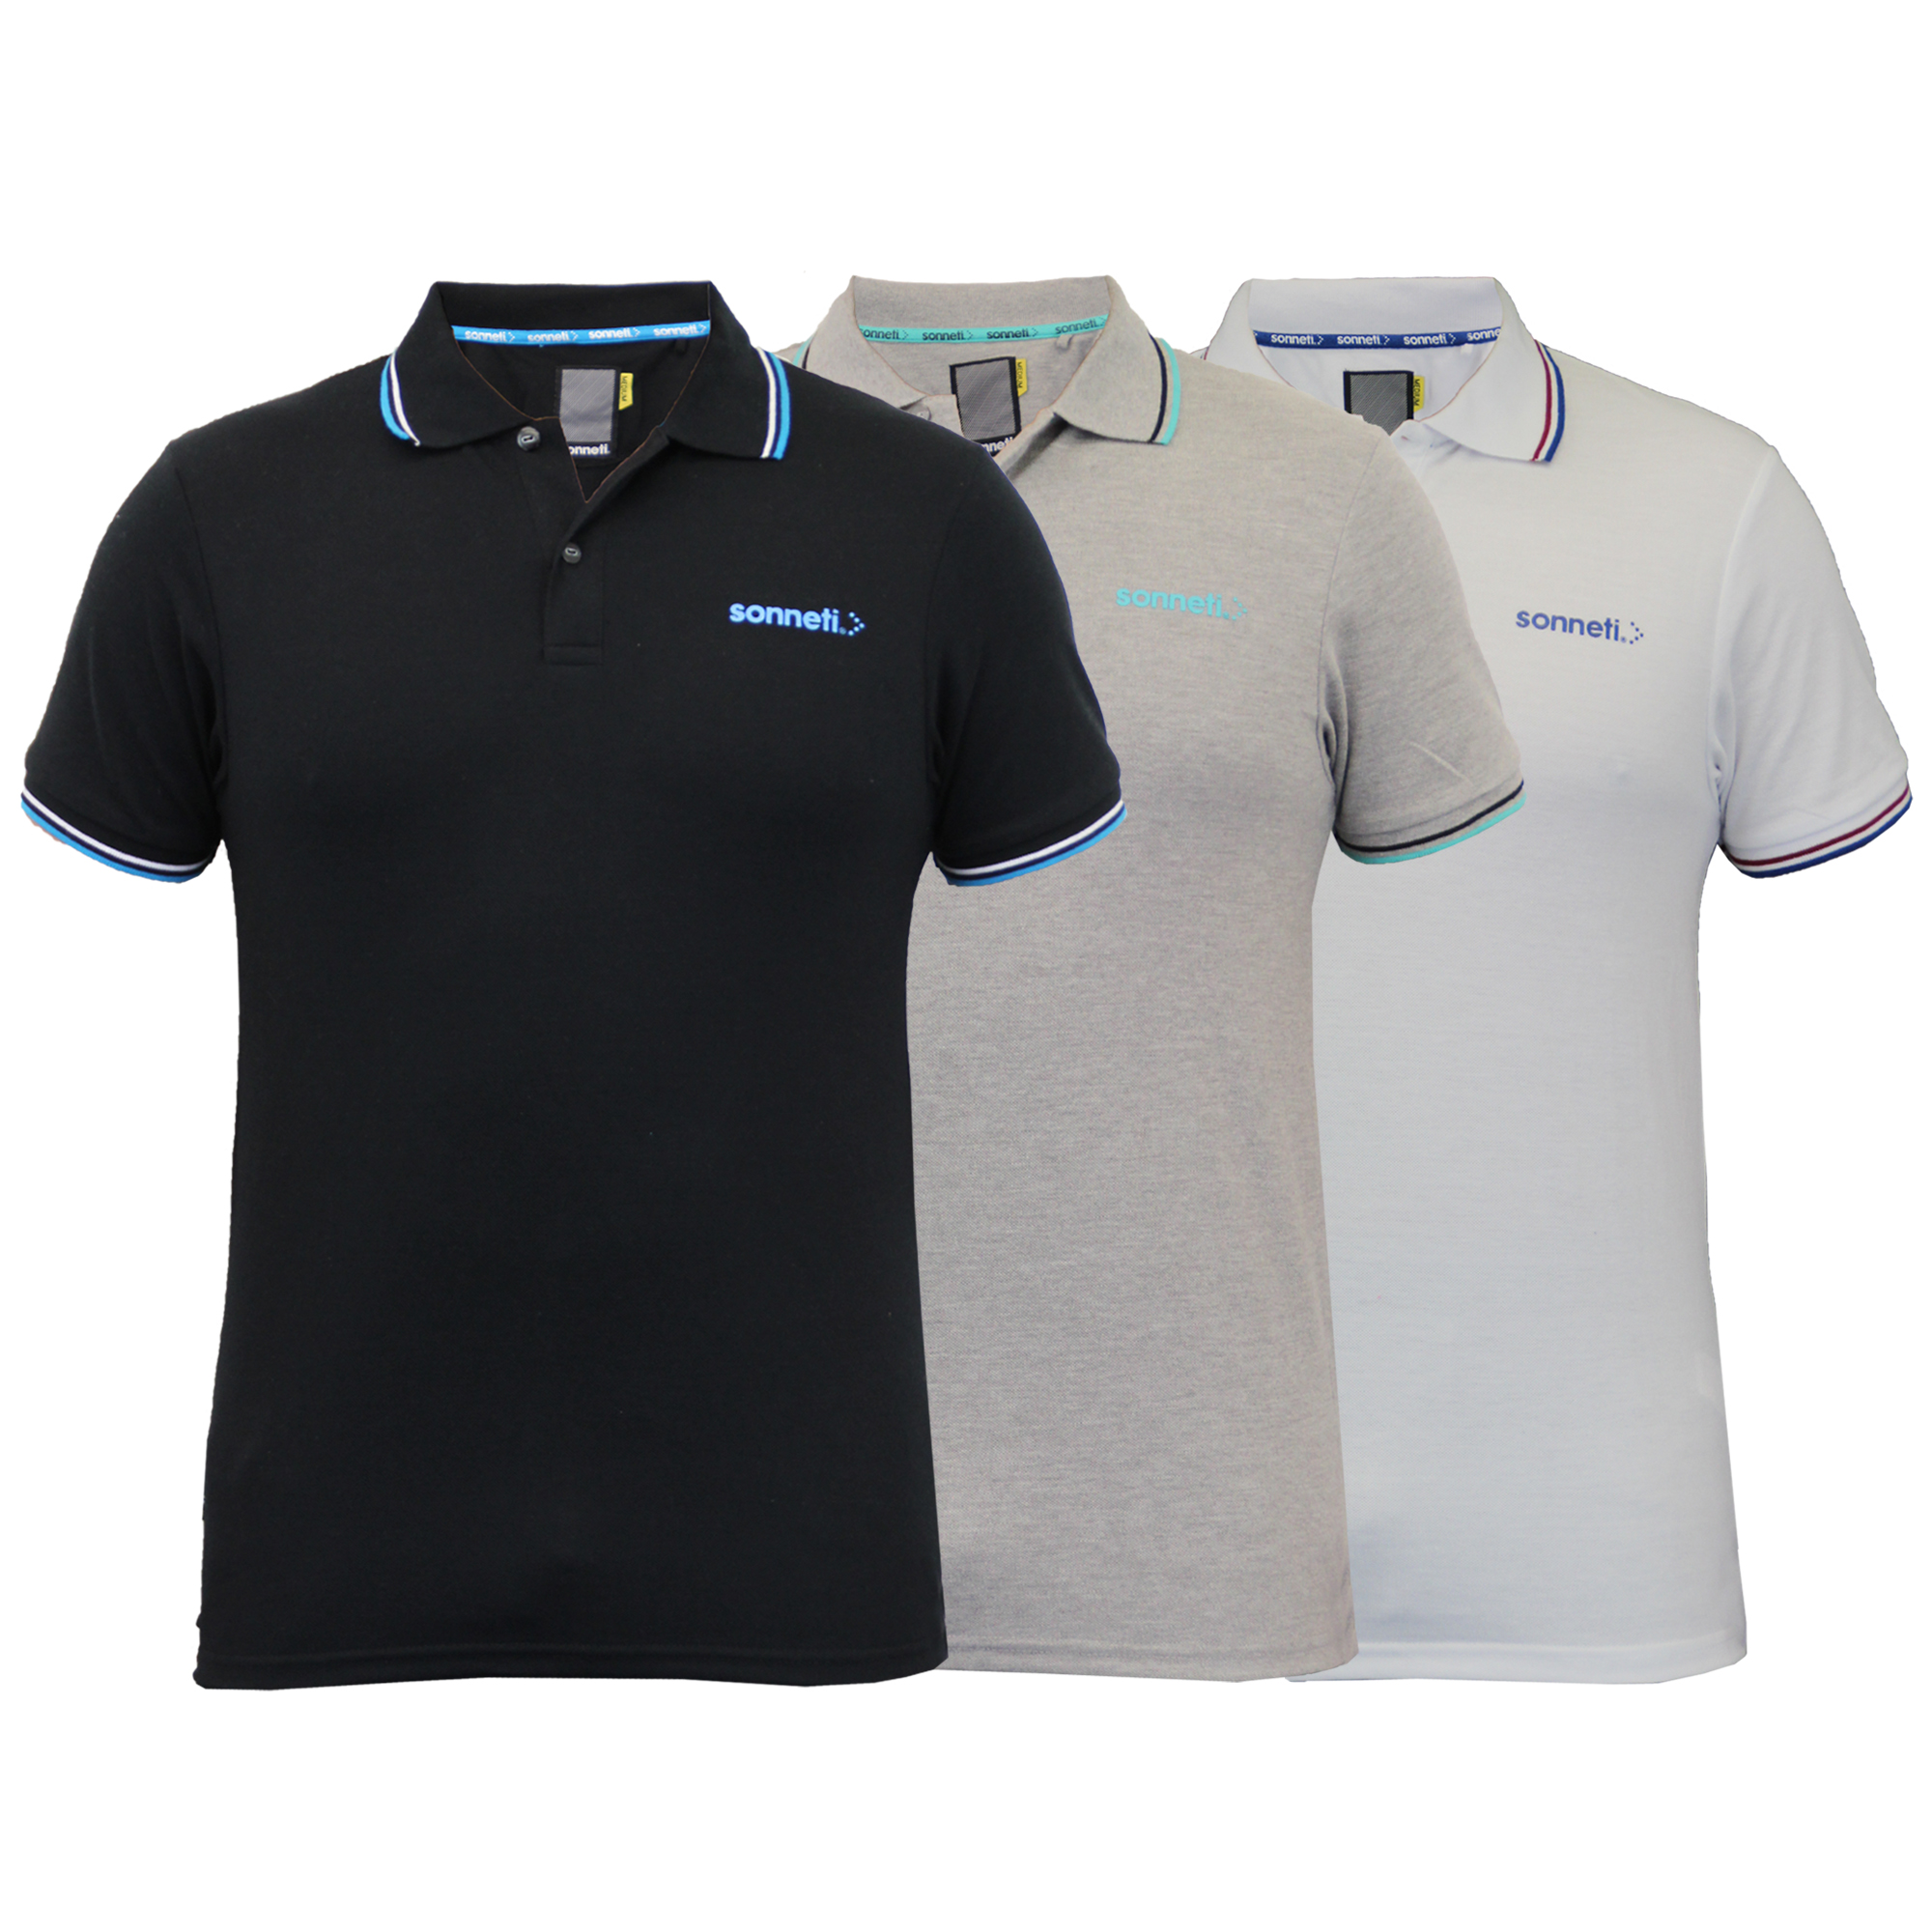 Mens-Polo-T-Shirts-Sonneti-Pique-Top-Short-Sleeved-Collared-Casual-Summer-New thumbnail 4